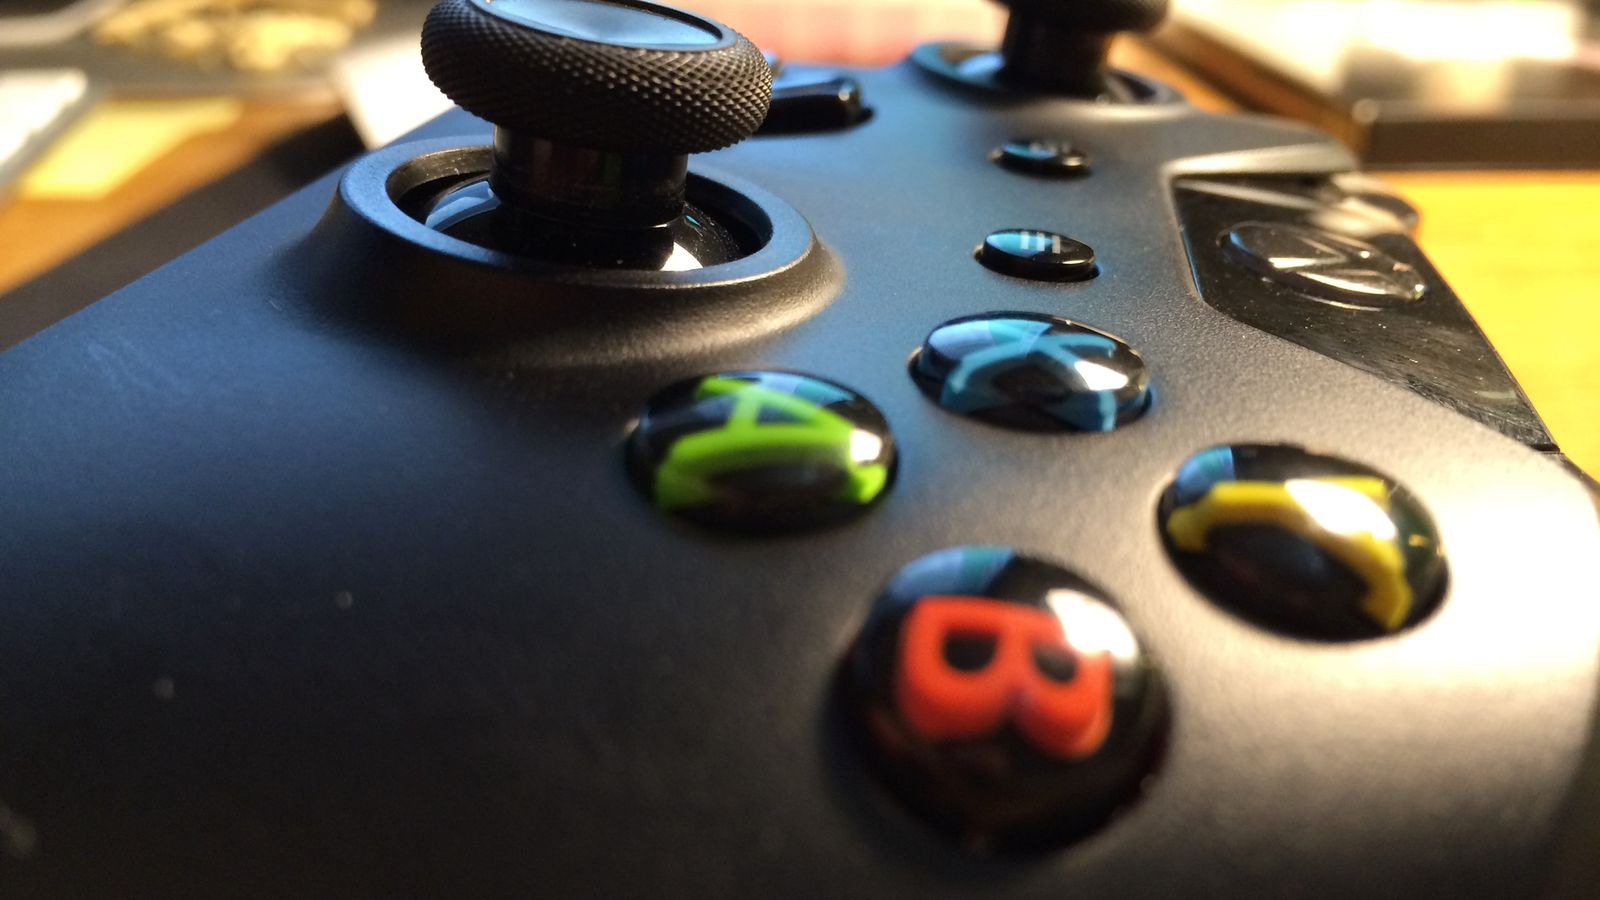 New Xbox One Indie Games : Spikes guacamelee and castlestorm among first wave